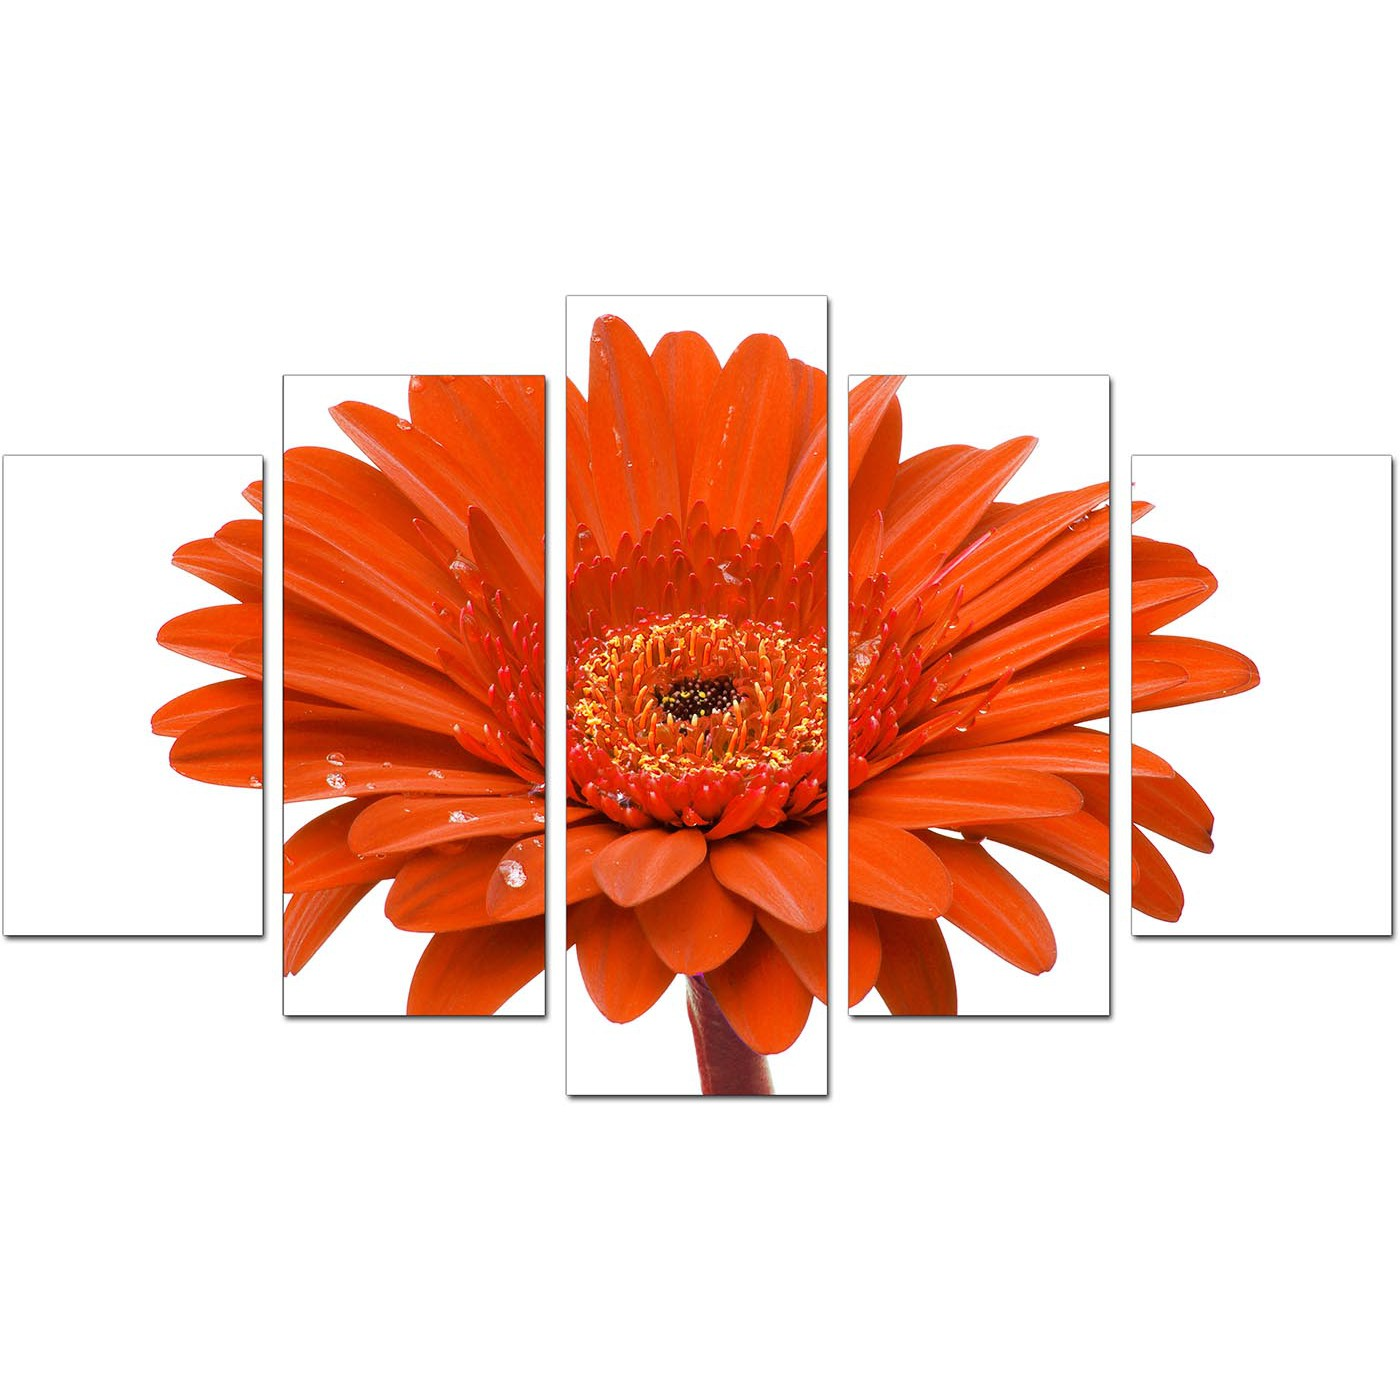 Extra large flower canvas prints 5 part in orange orange bedroom set of five of daisy display gallery item 1 set of dhlflorist Image collections